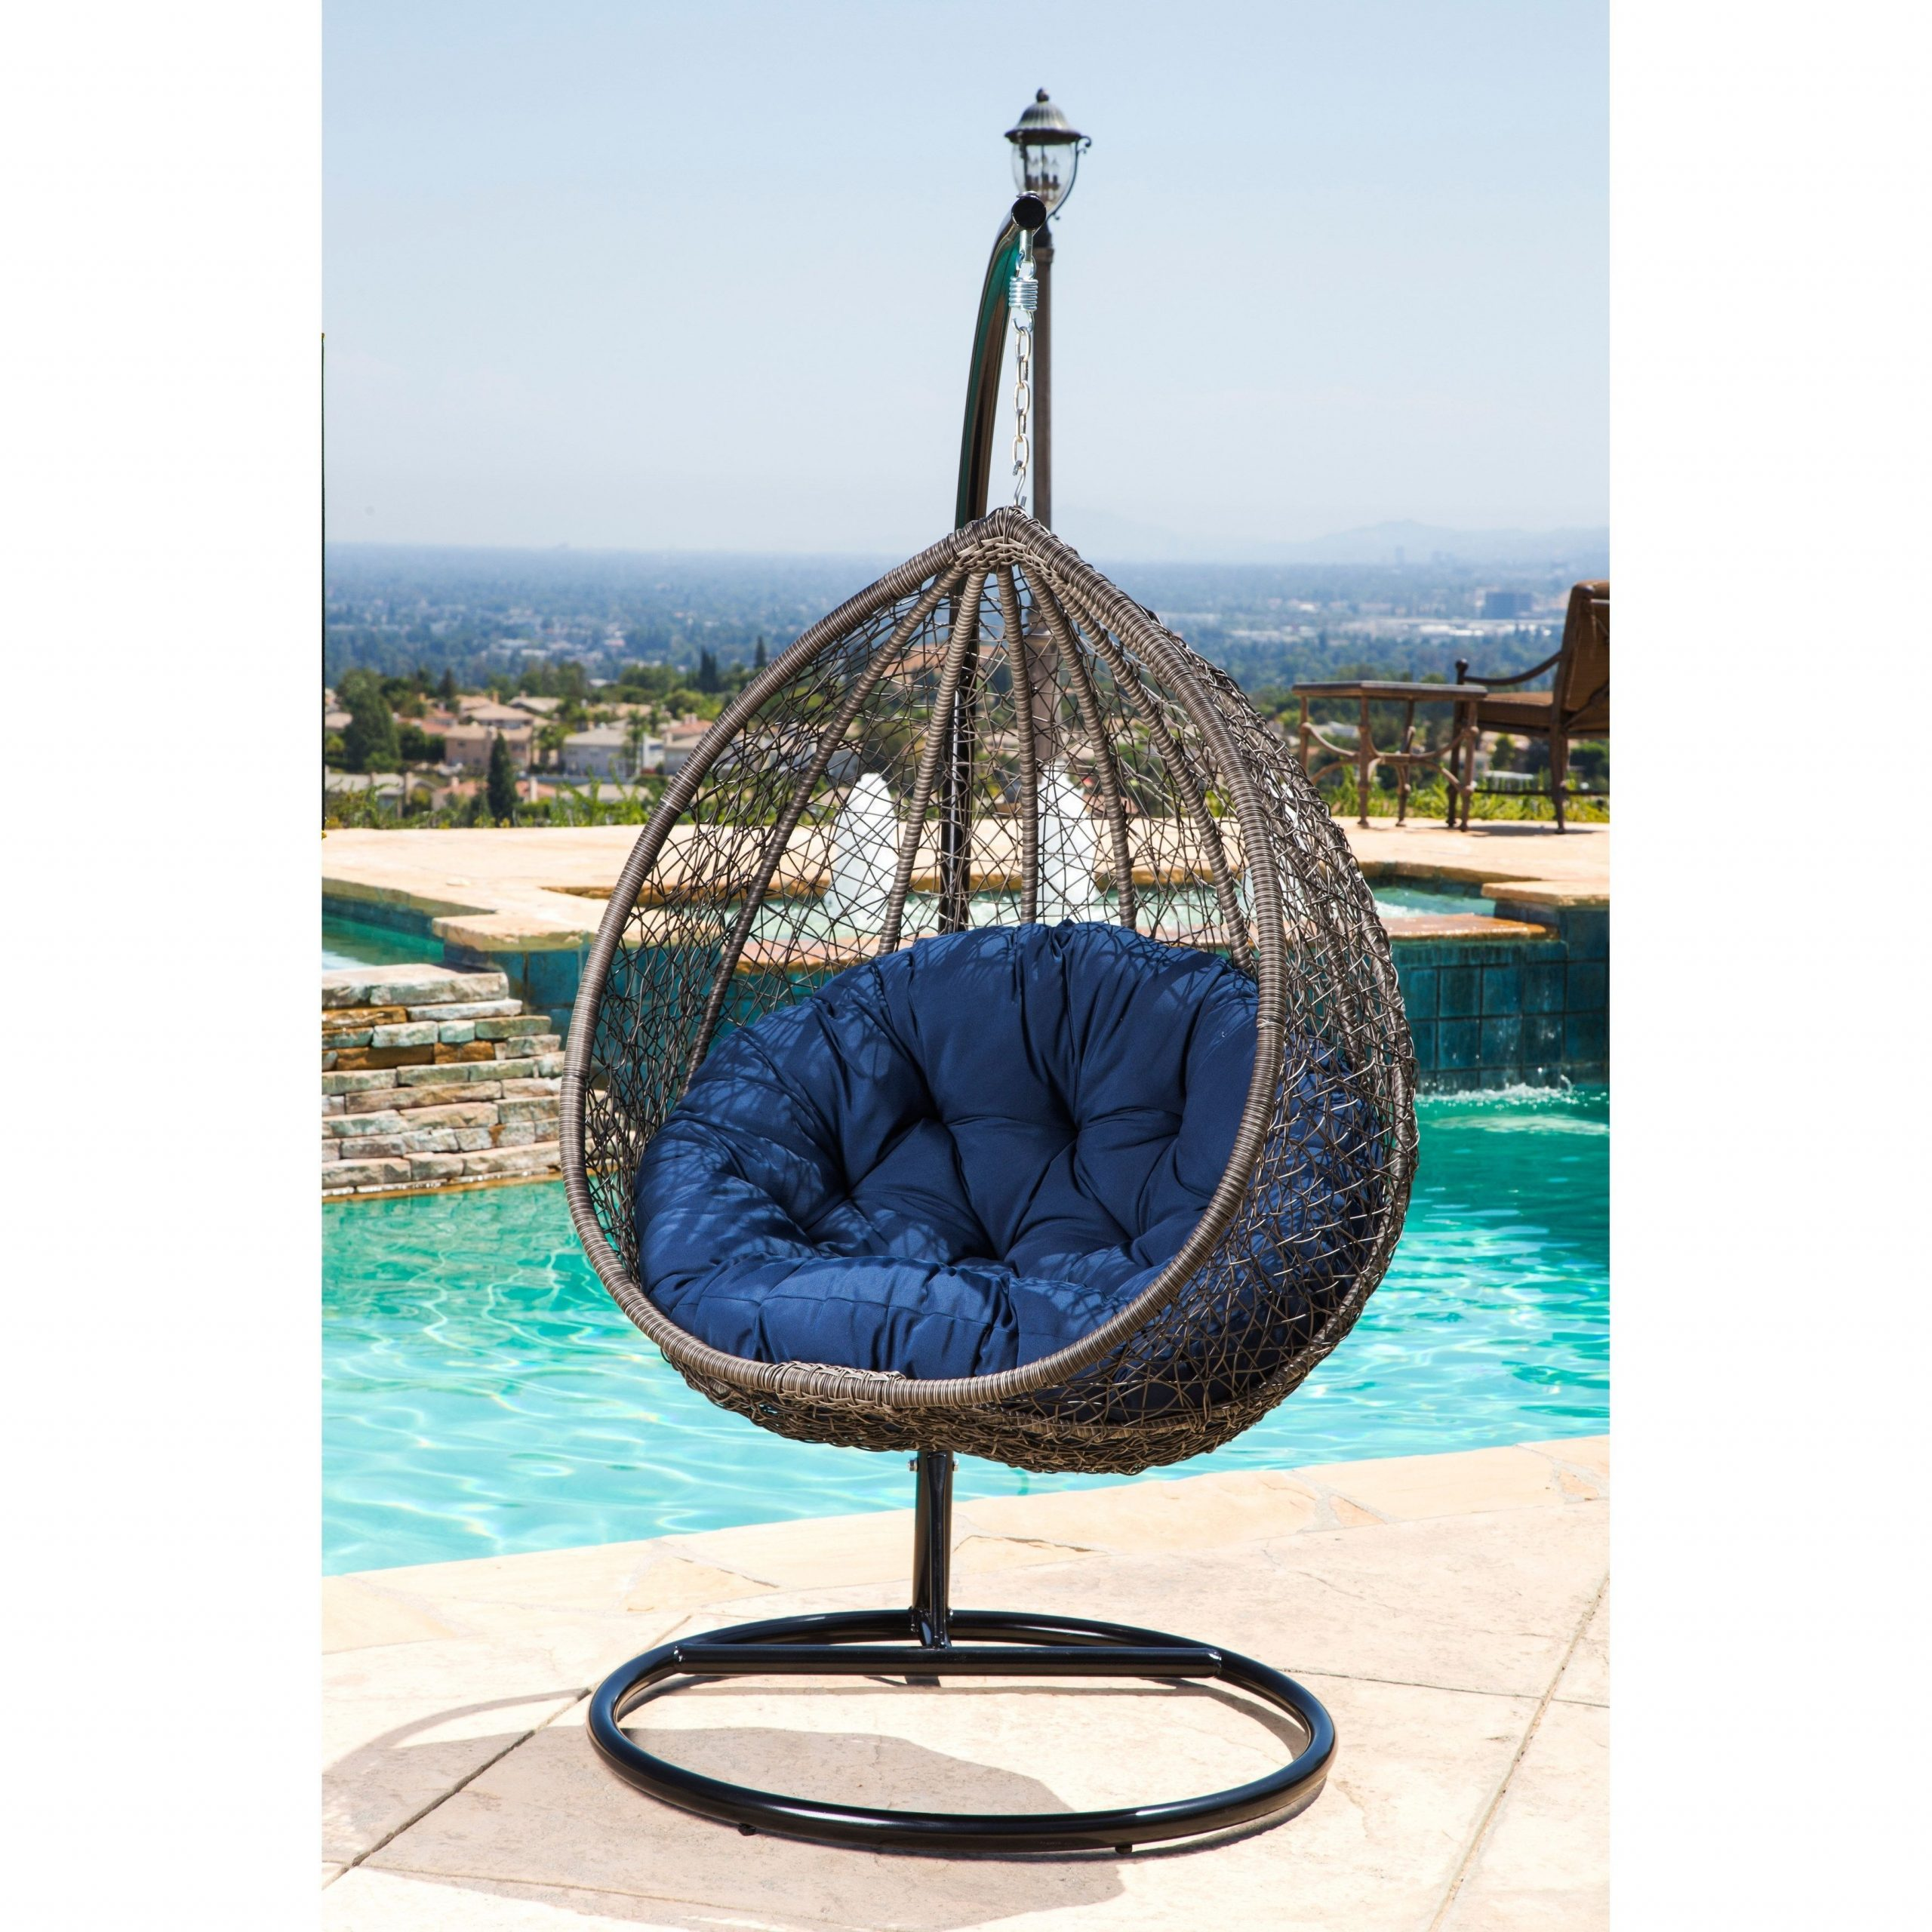 Abbyson Newport Outdoor Wicker Patio Swing Chair (Brown/blue Intended For Outdoor Wicker Plastic Tear Porch Swings With Stand (View 19 of 25)